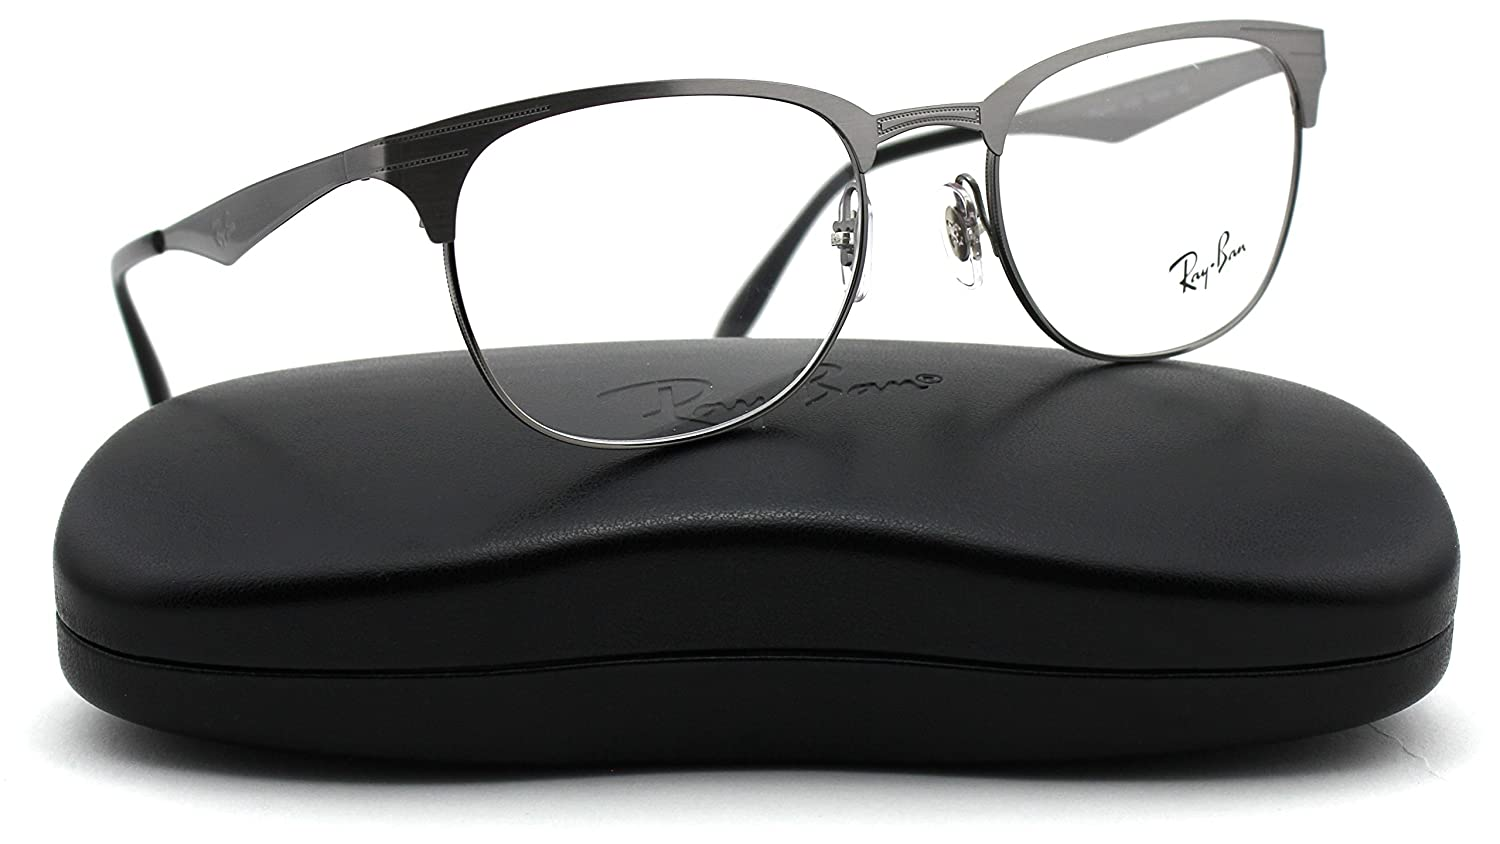 e04db222925 Ray-Ban RX6346 2553 Unisex Eyeglasses Metal Brushed Gunmetal Frame 50mm   Amazon.co.uk  Clothing